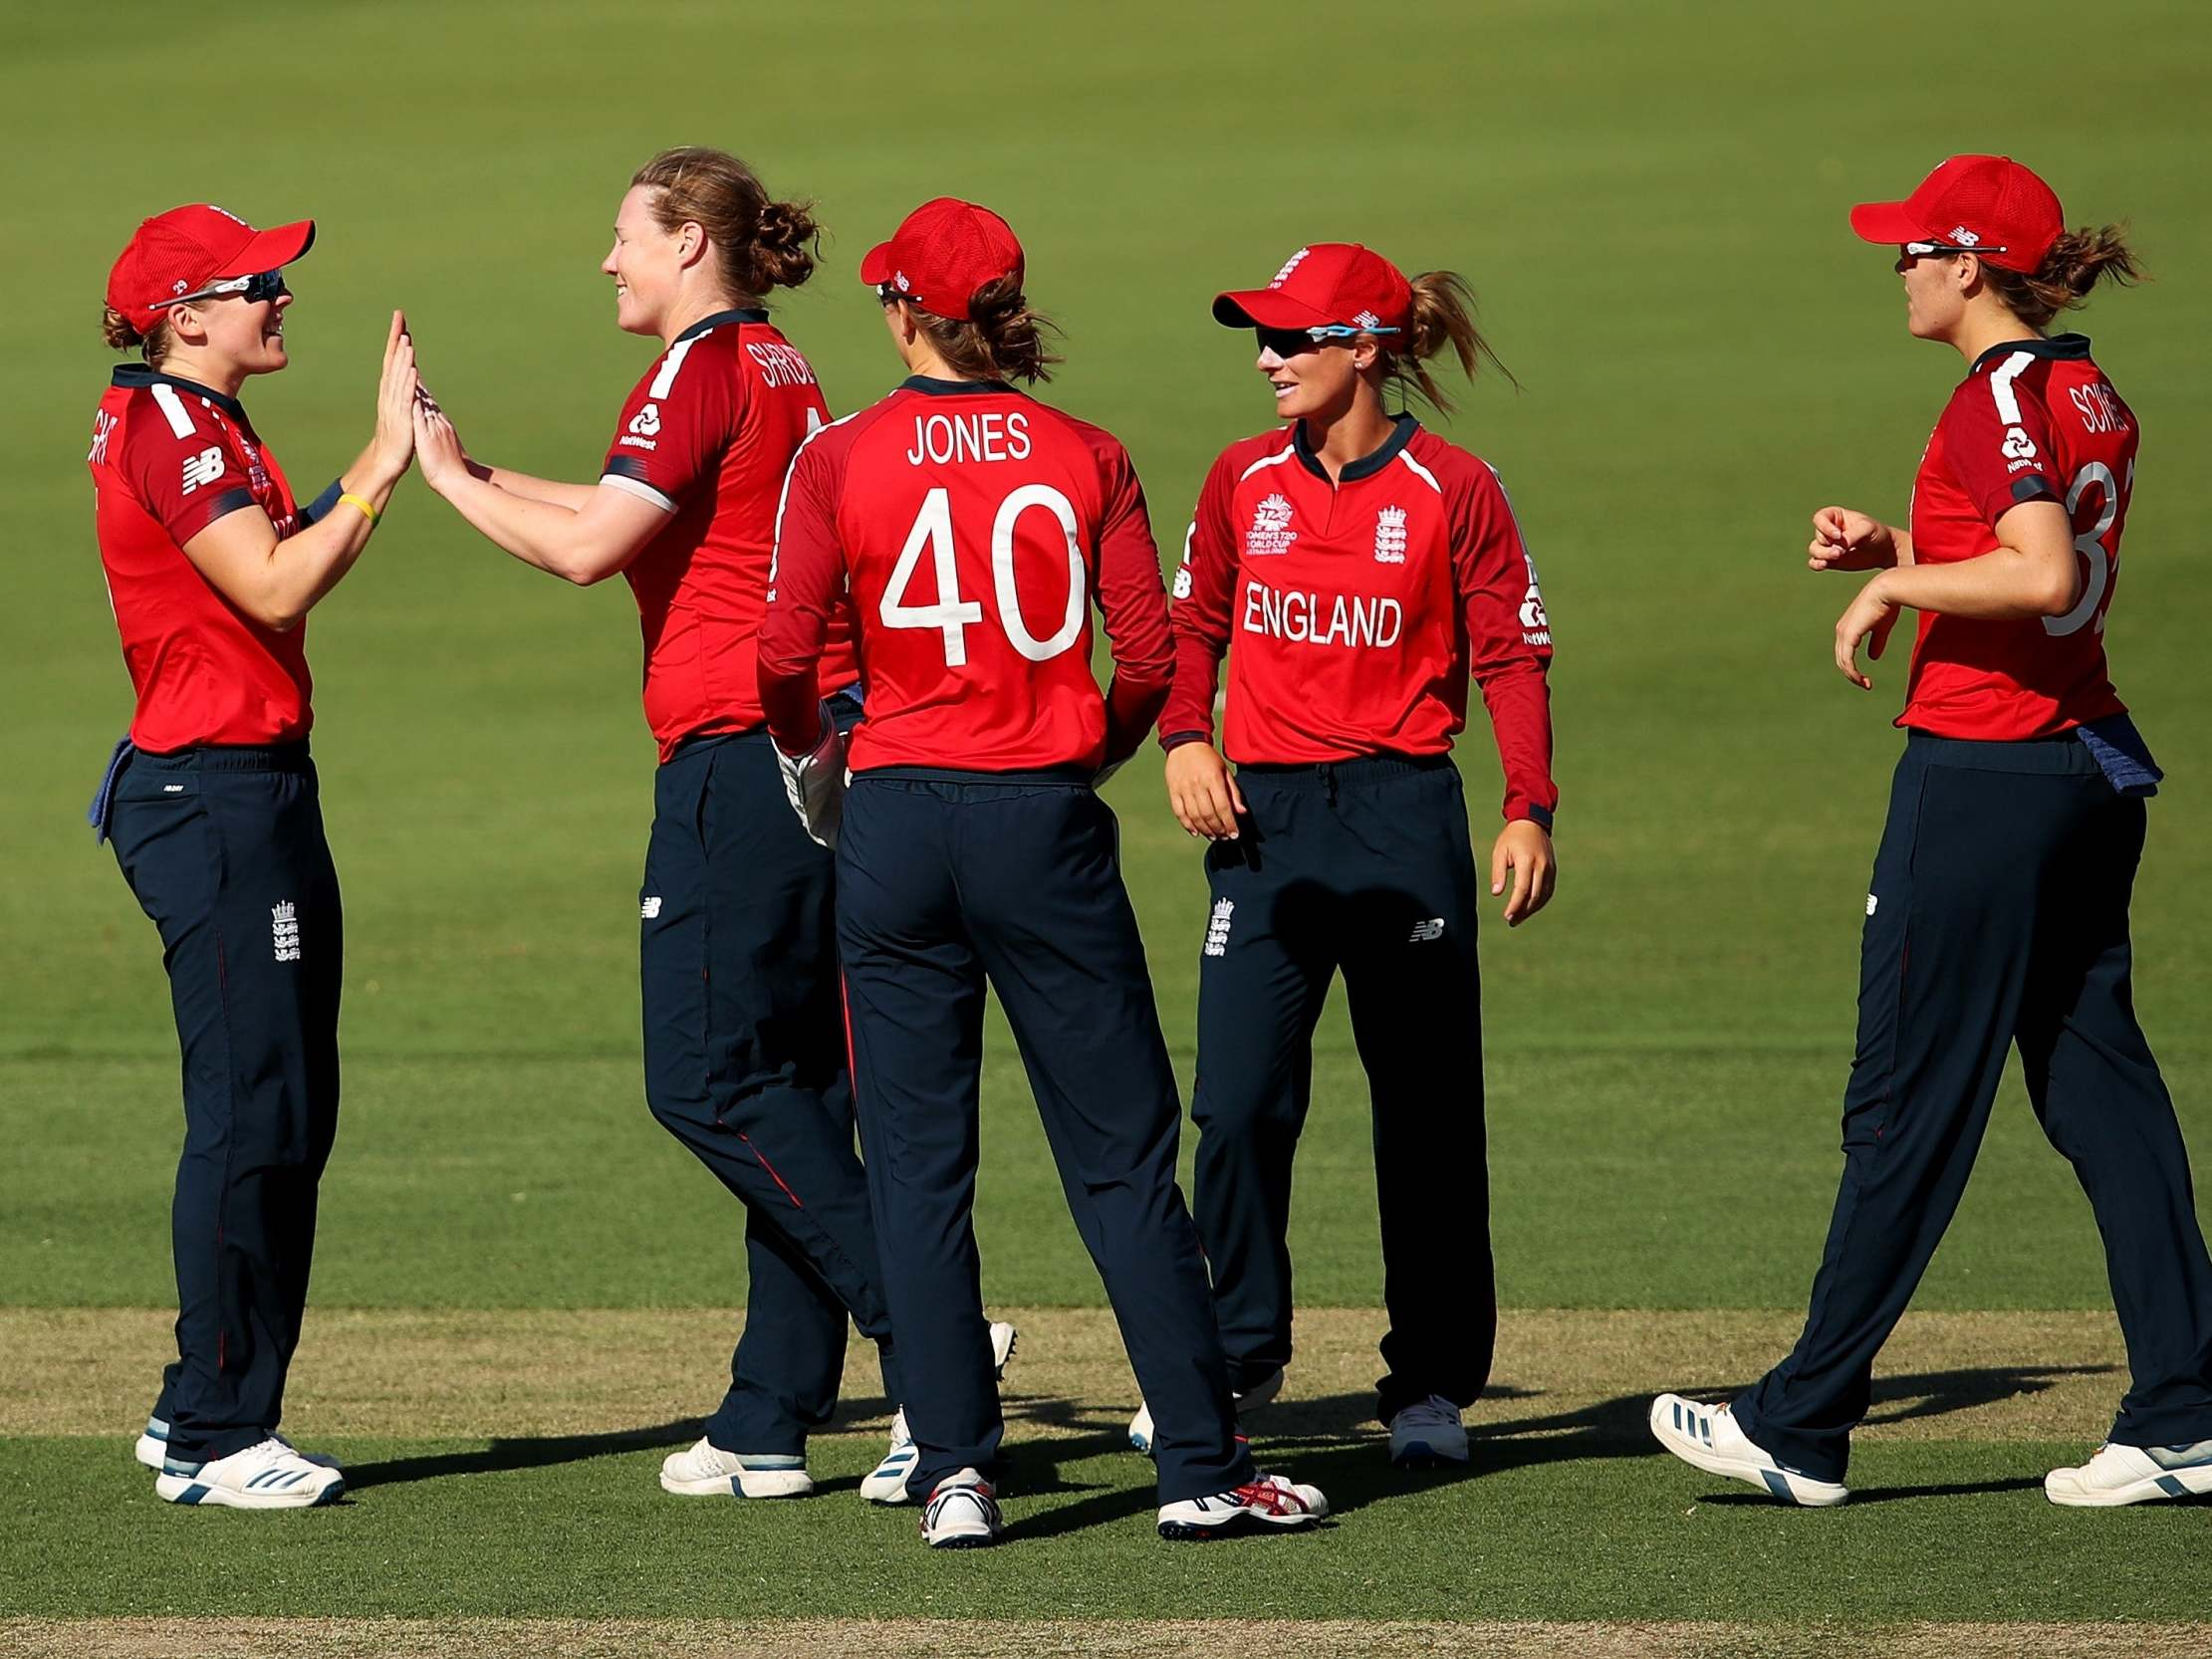 England delighted to finally 'put their stamp' on World Cup